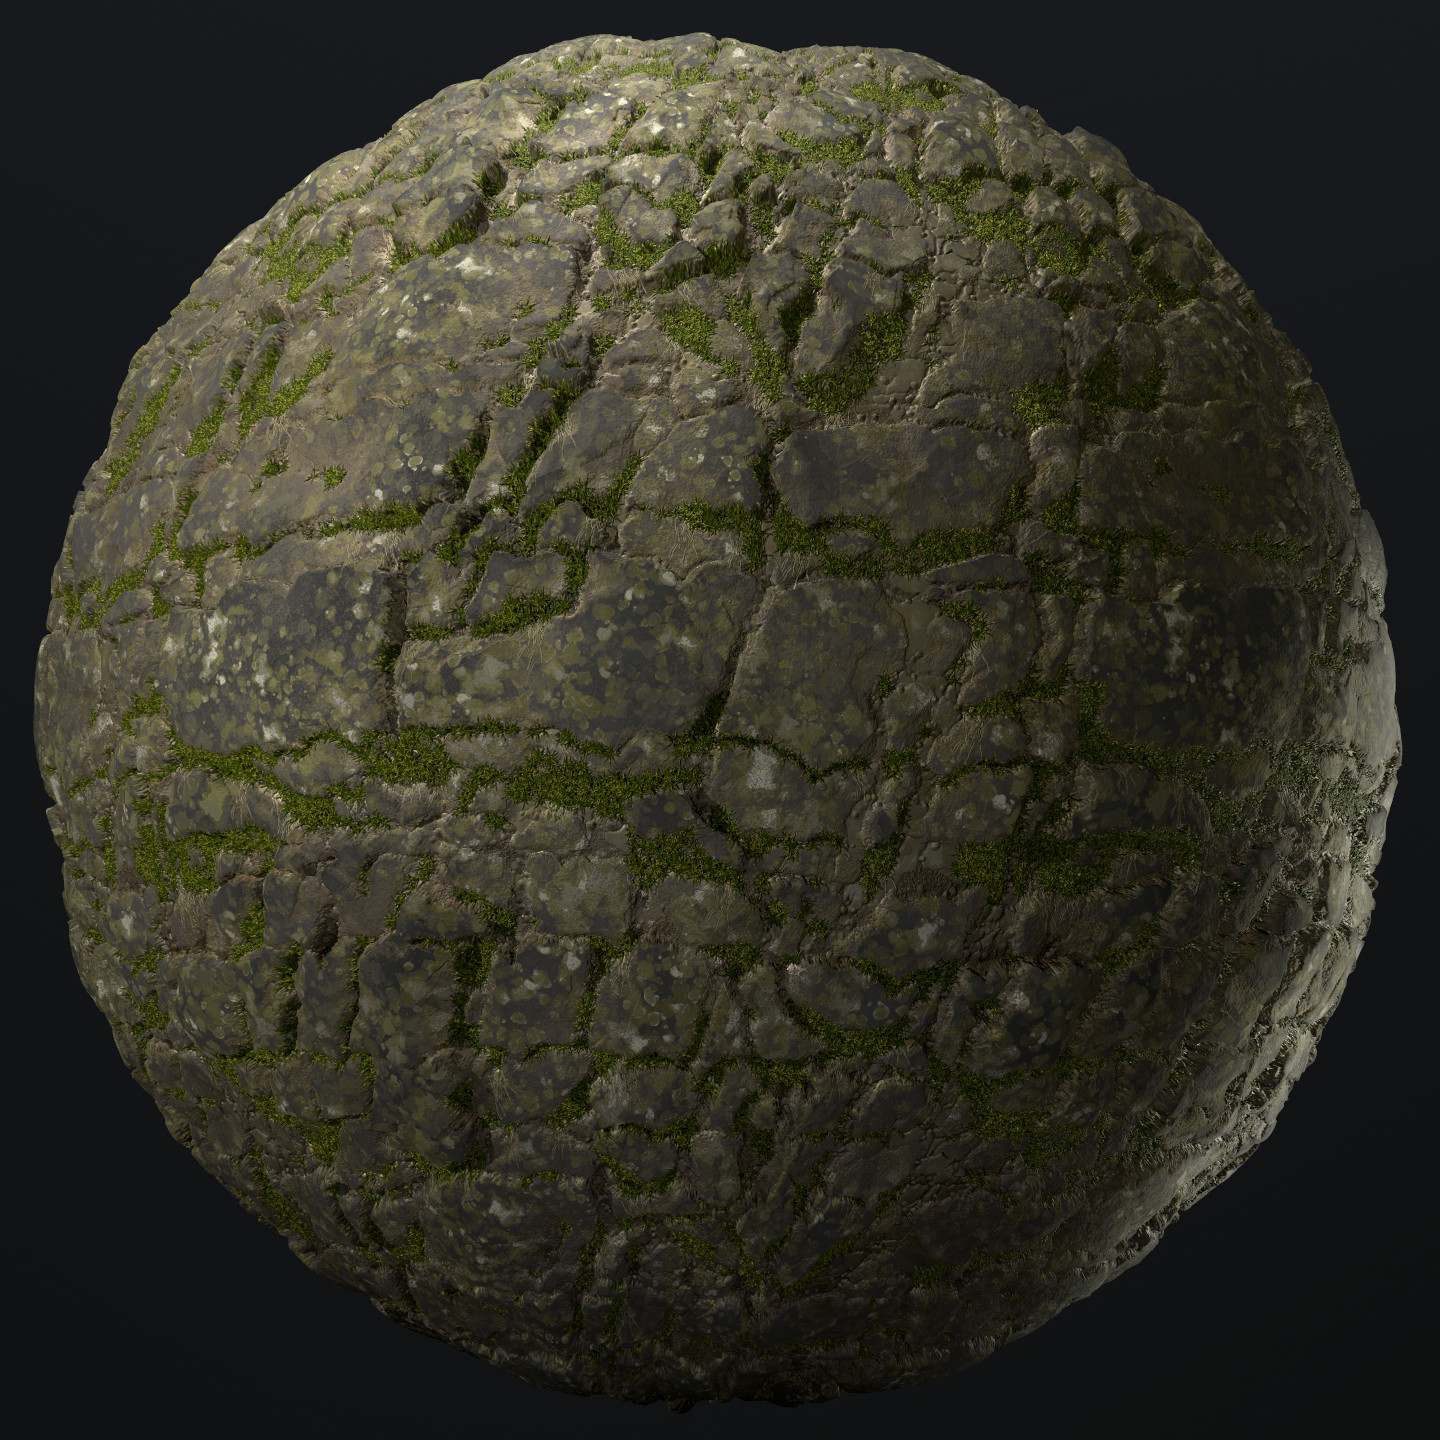 Stone and Grass From a tutorial by Allegorithmic: https://youtu.be/foyfgfjQbK4